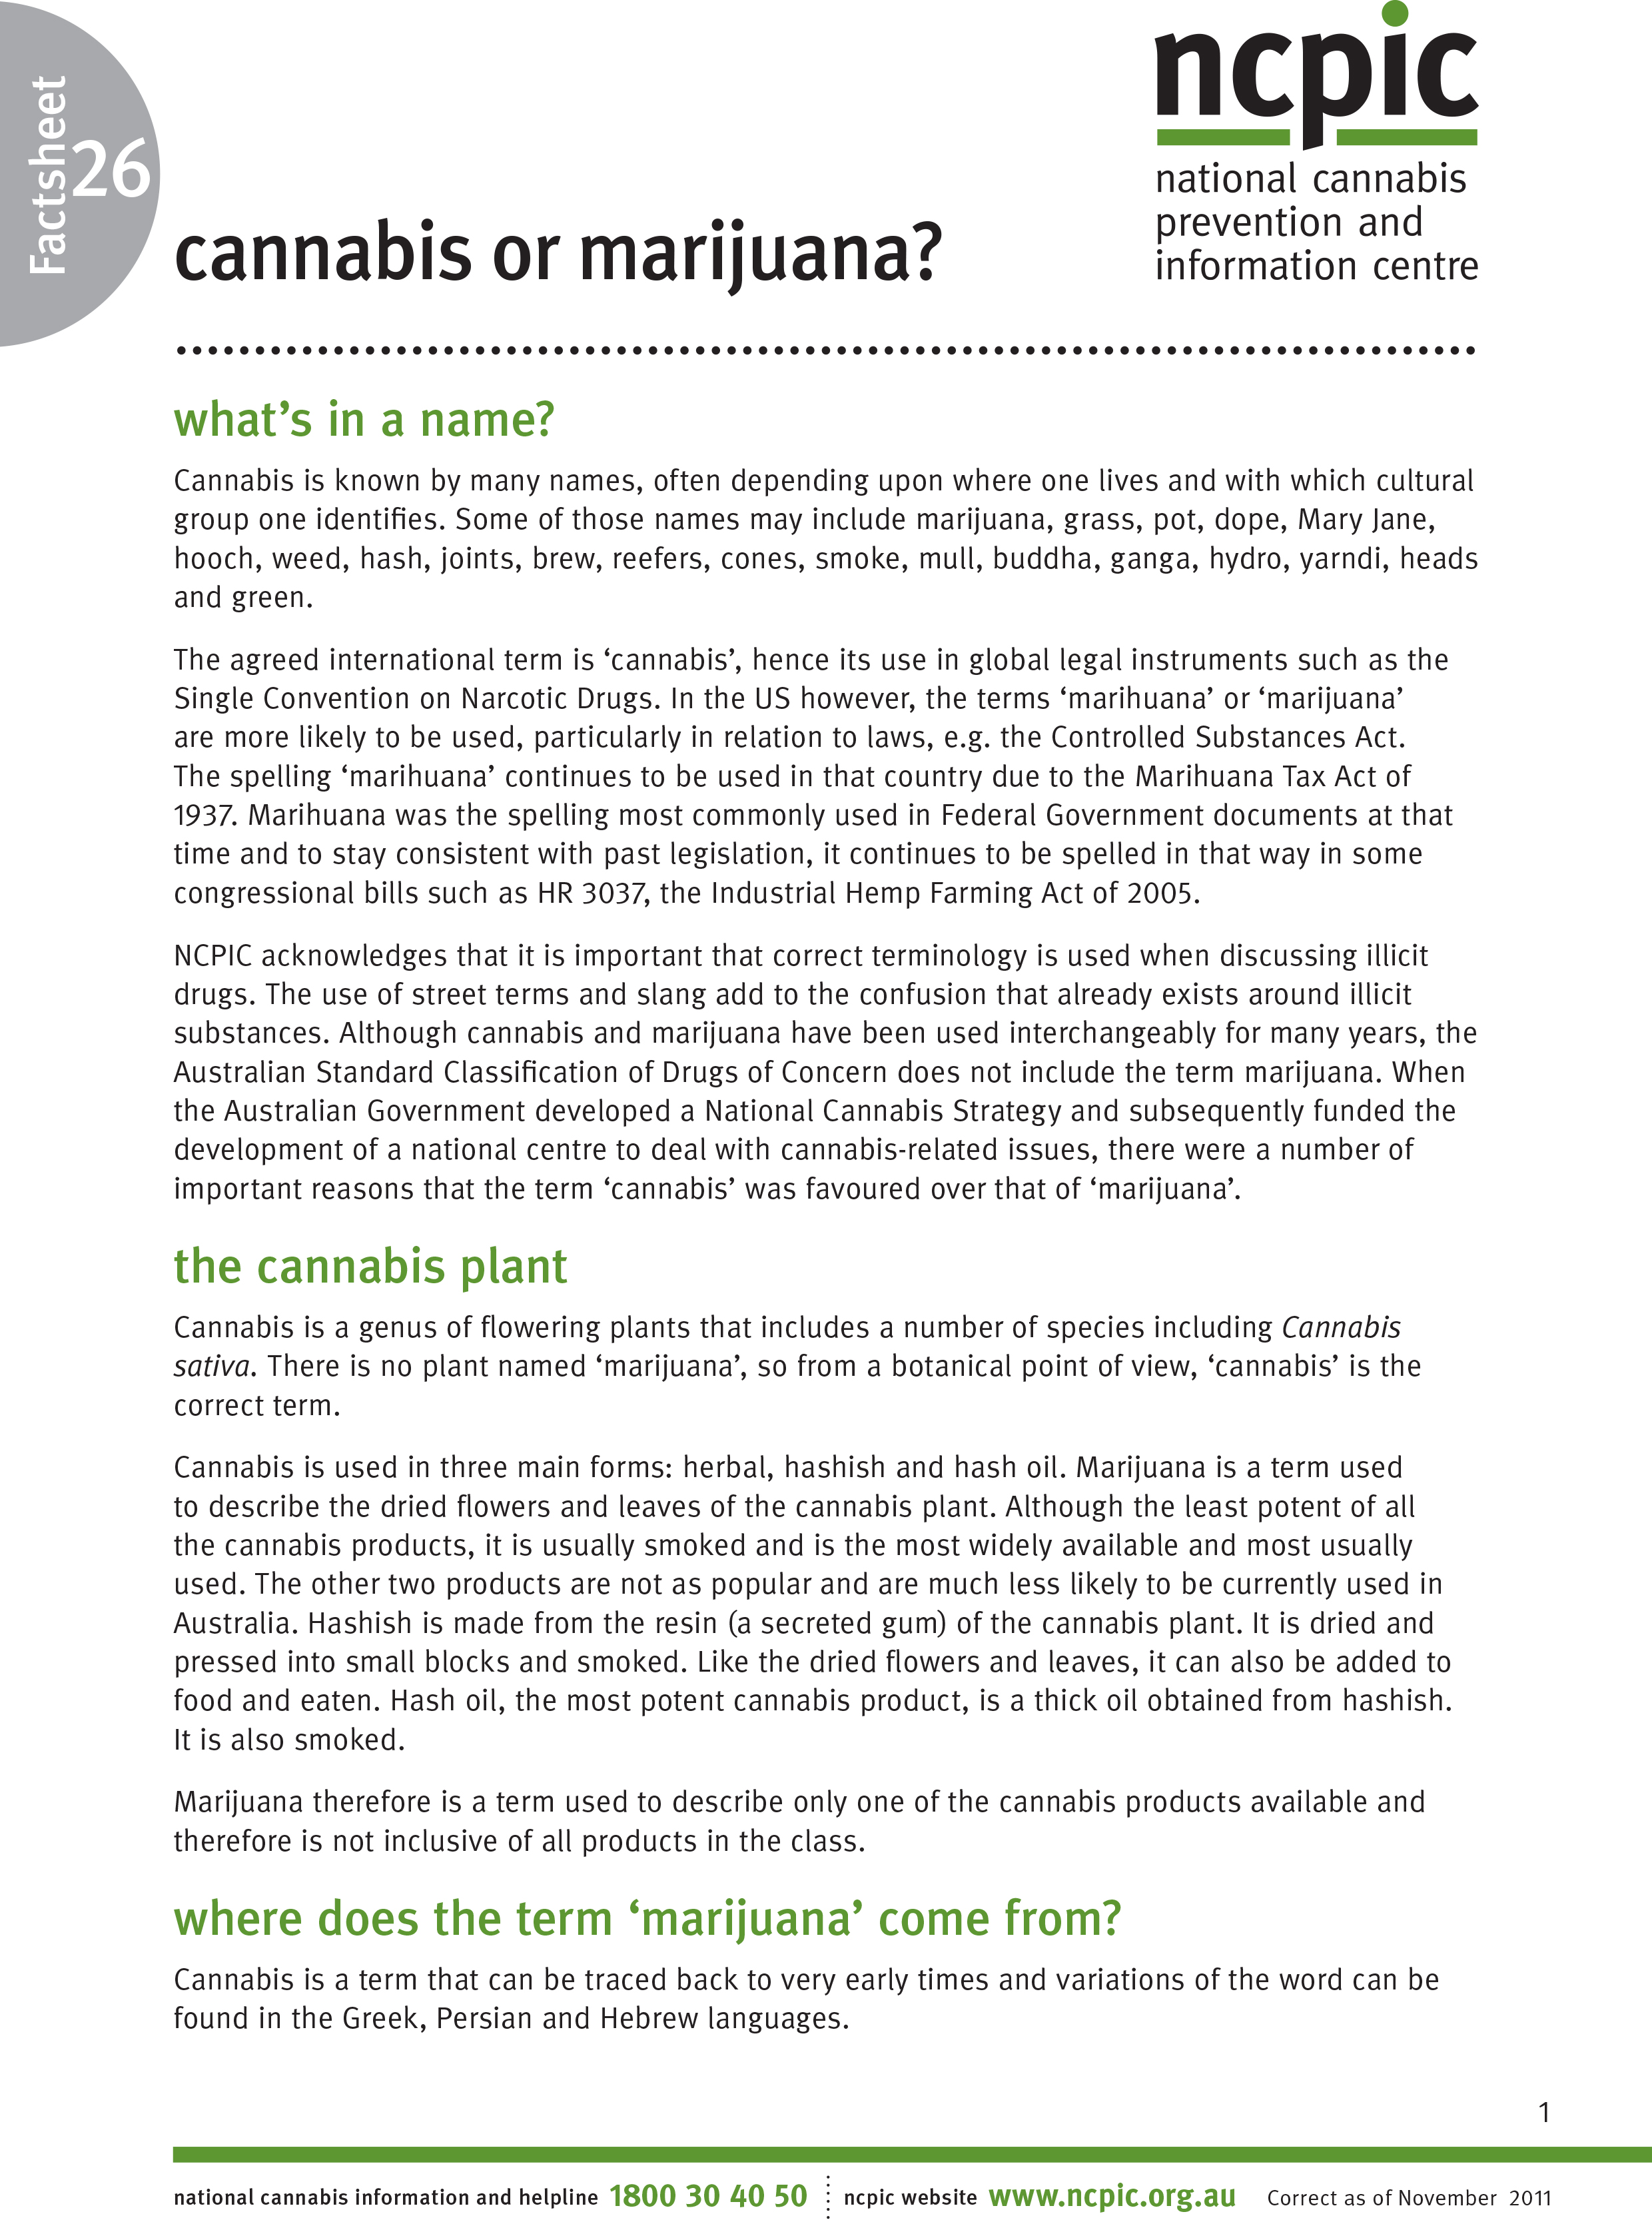 Cannabis or Marijuana: Terminology Factsheet - NCPIC (2011)